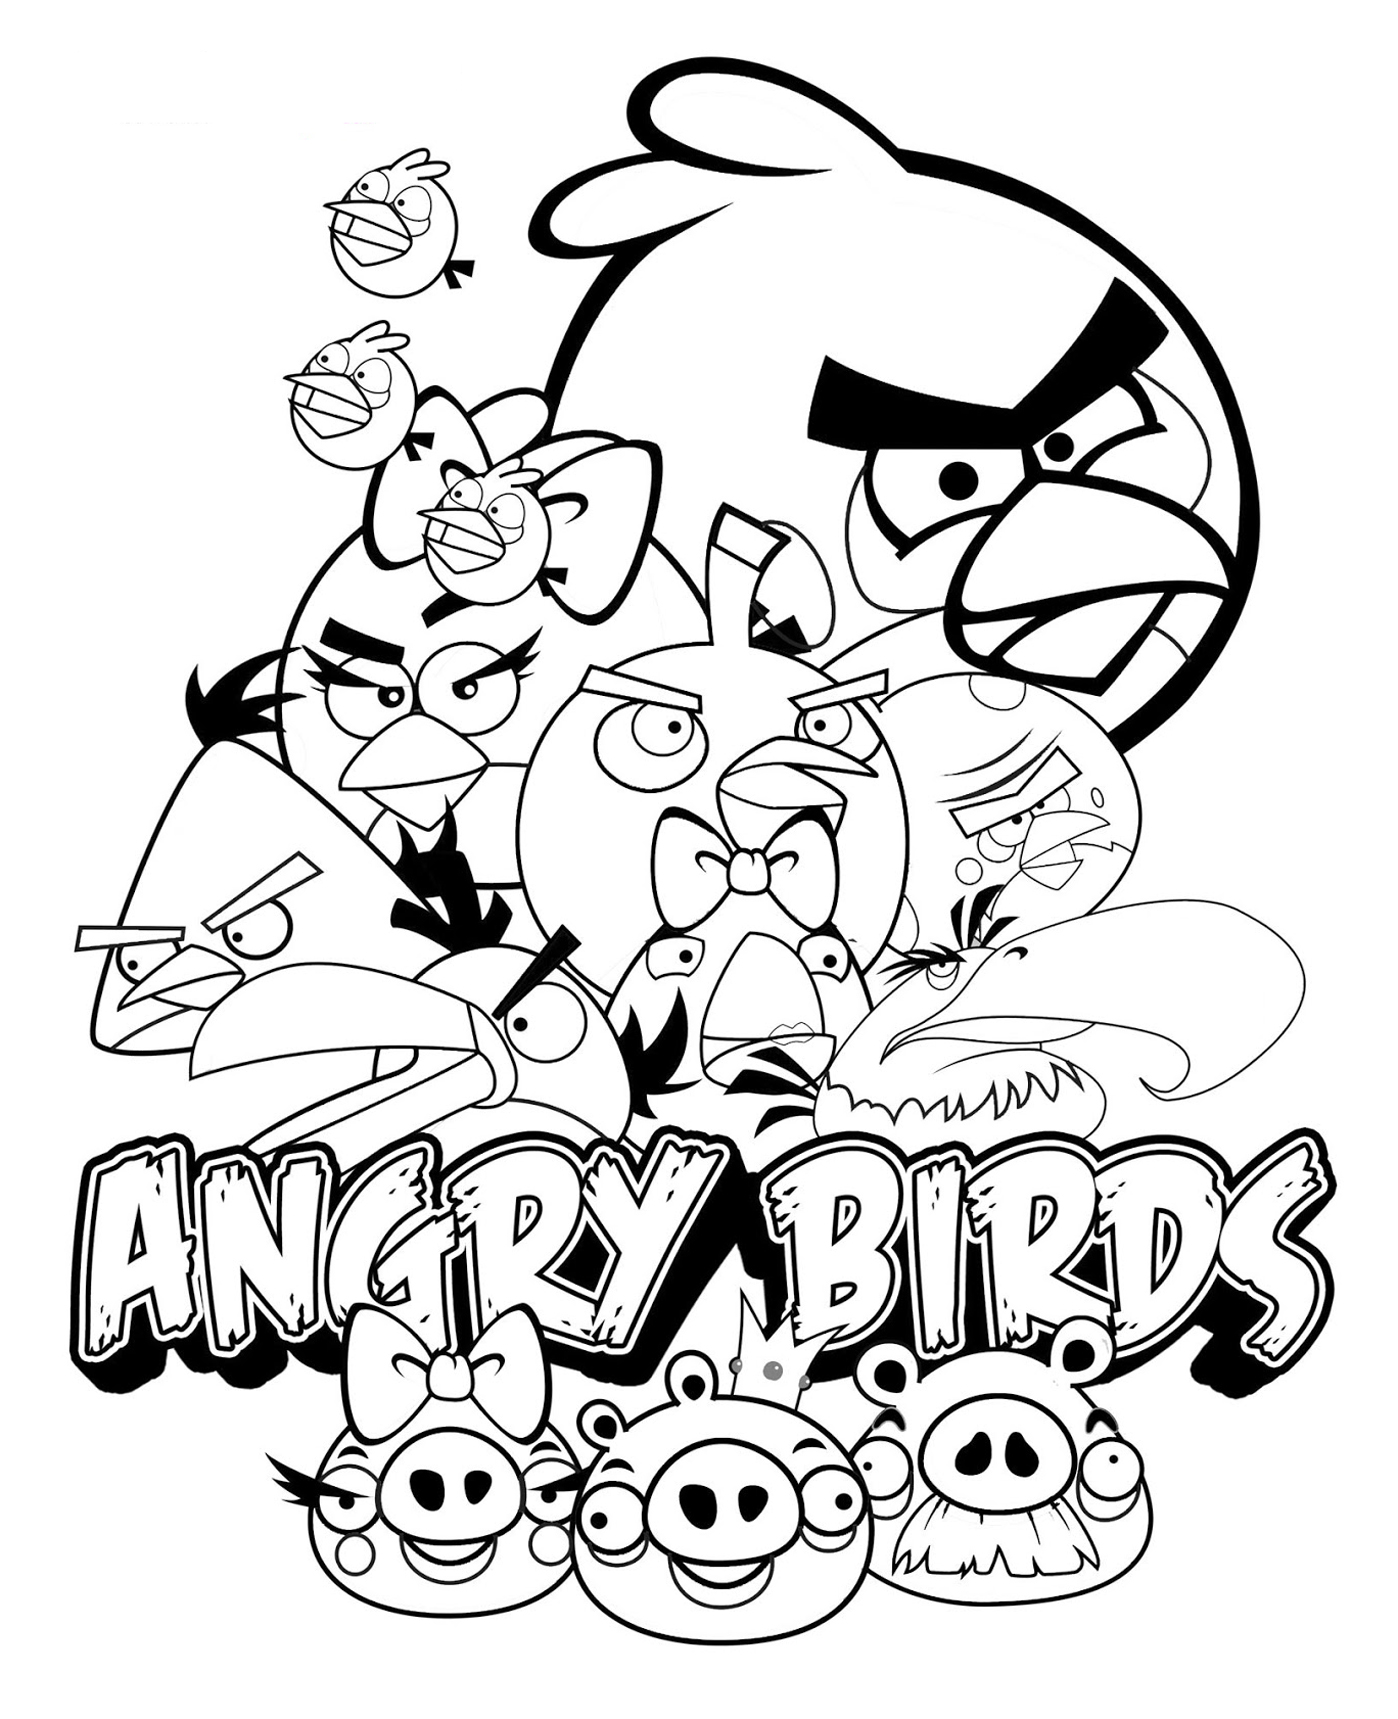 angry birds 2 coloring pages printable angry birds movie 2 coloring pages for kids angry pages 2 birds coloring